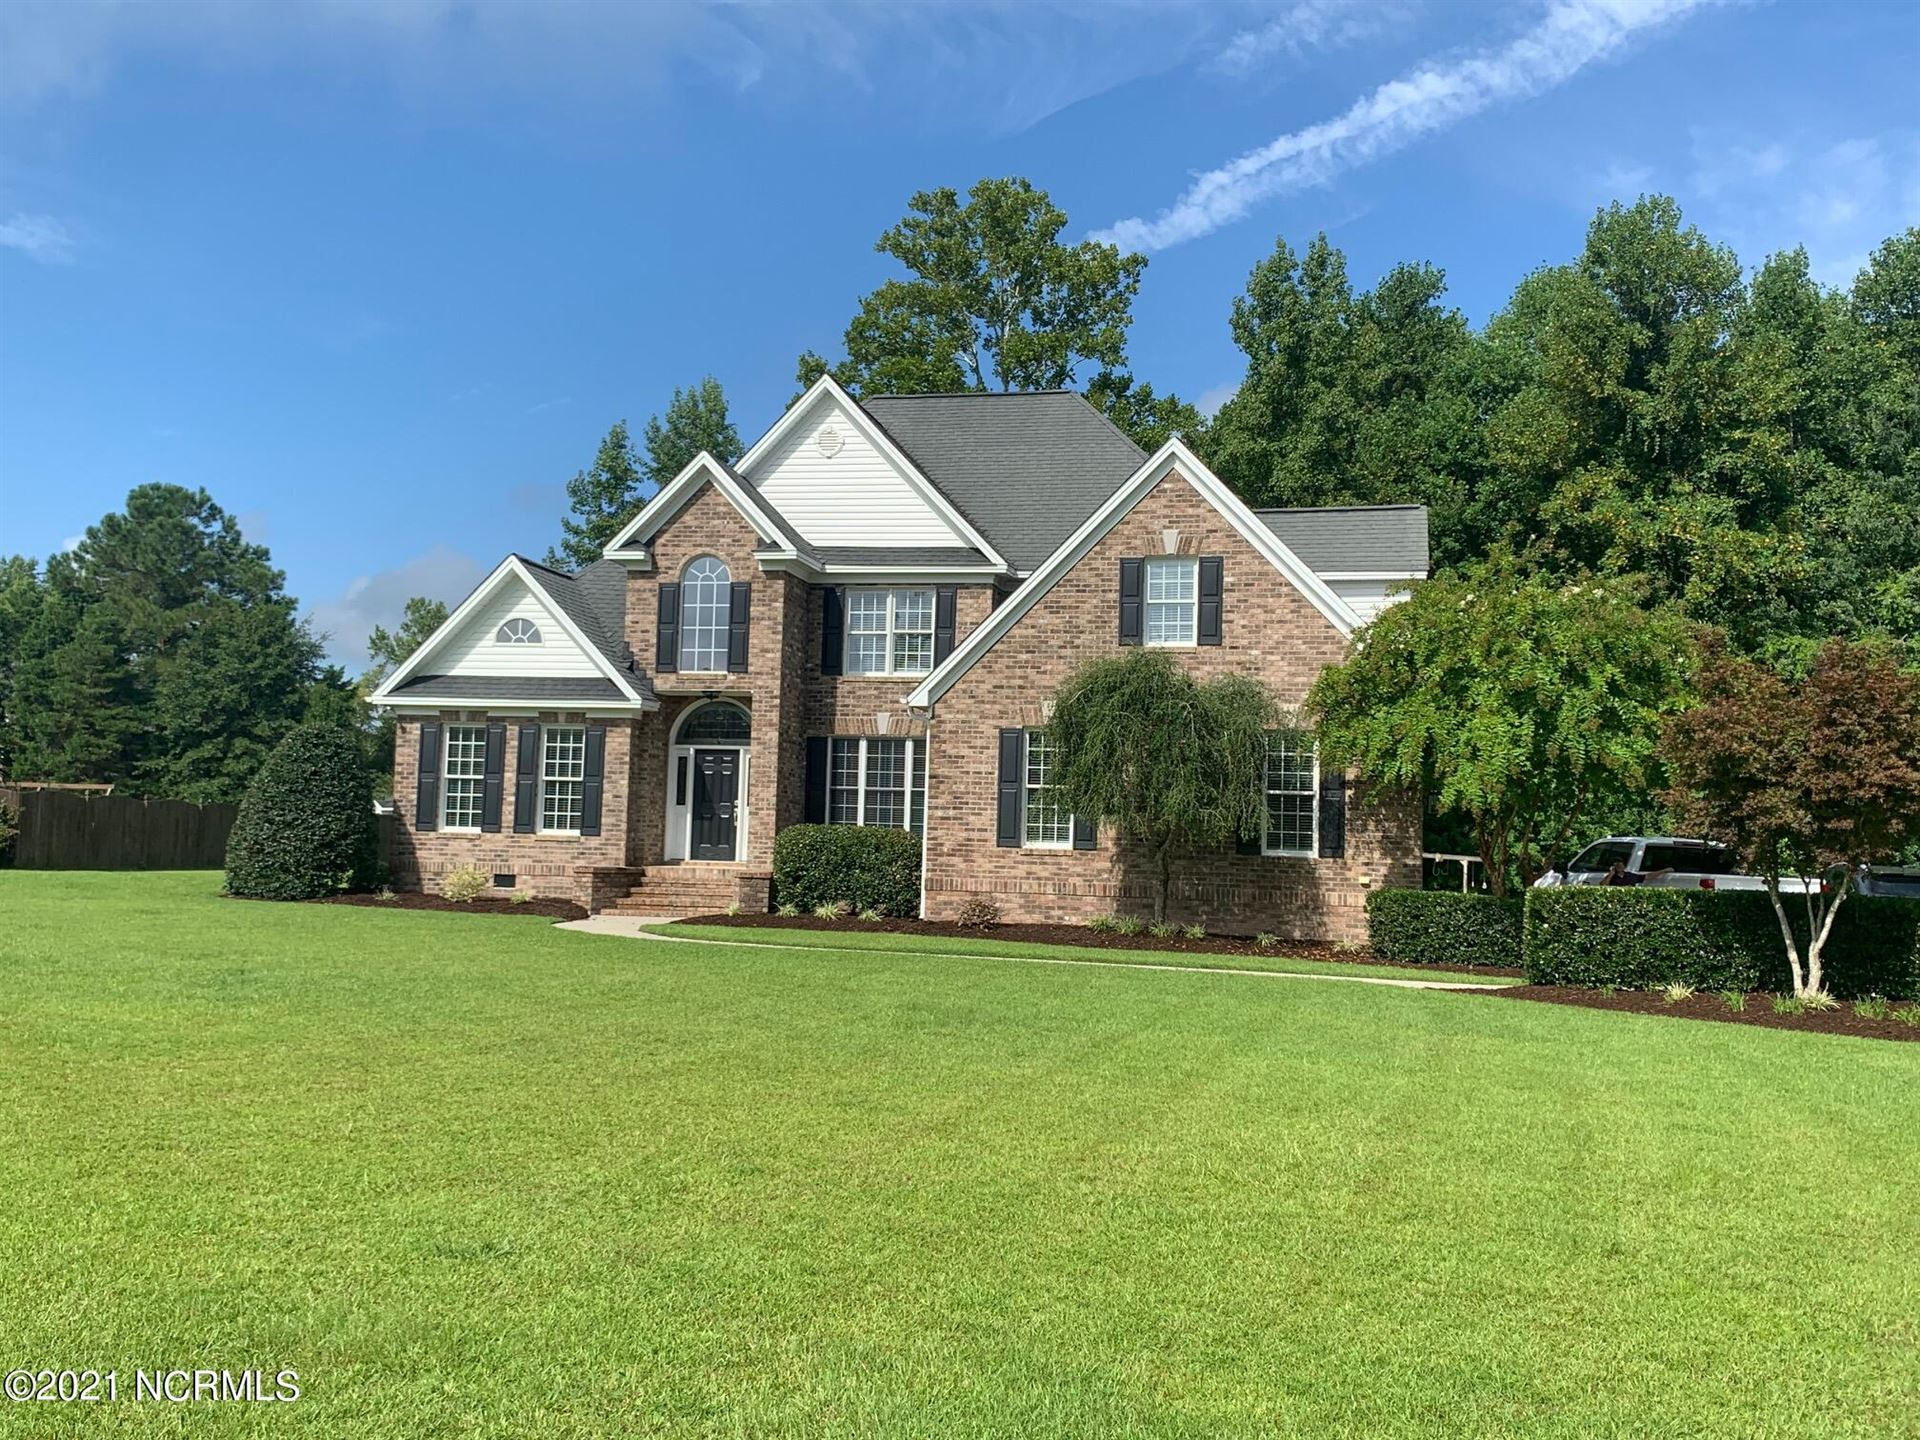 Photo of 216 River Branch Road, Greenville, NC 27858 (MLS # 100286300)